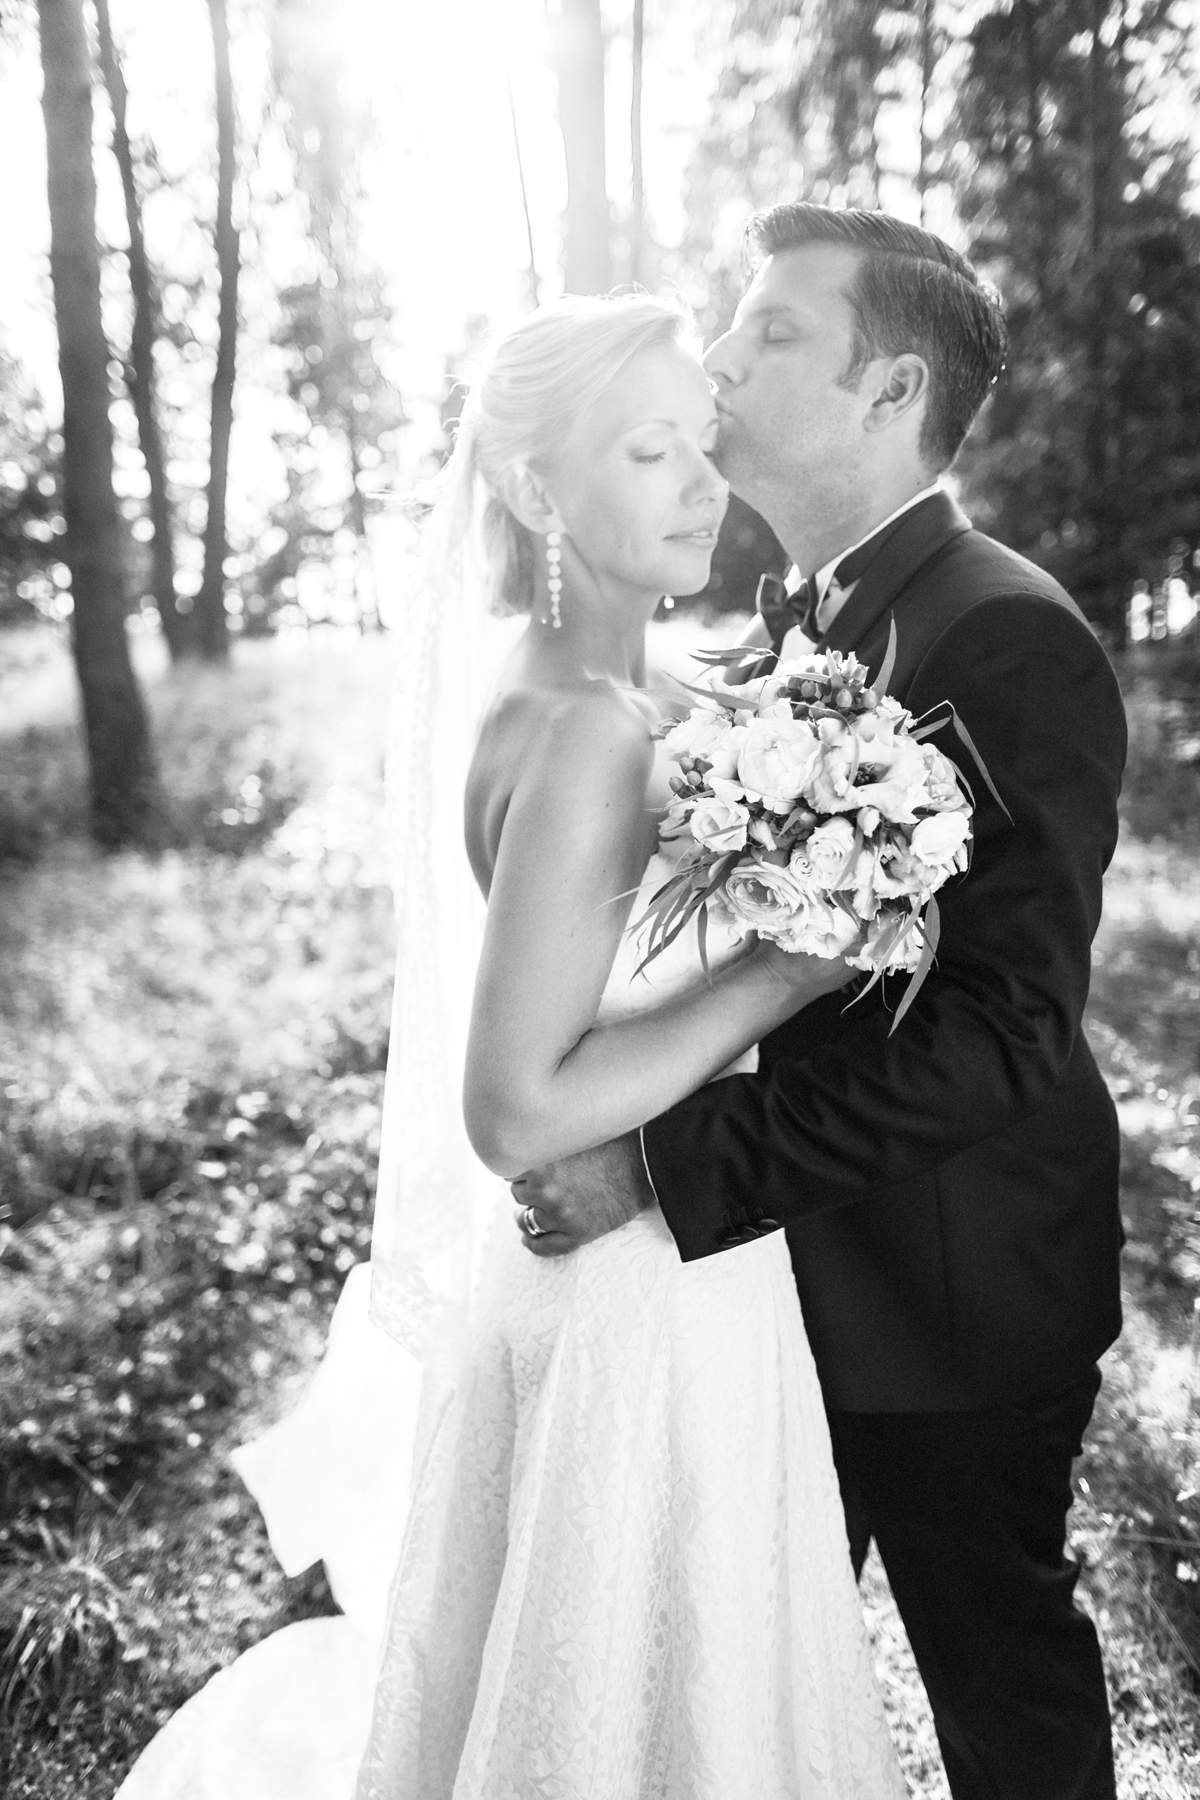 626-Petersone-Liene-wedding-blog